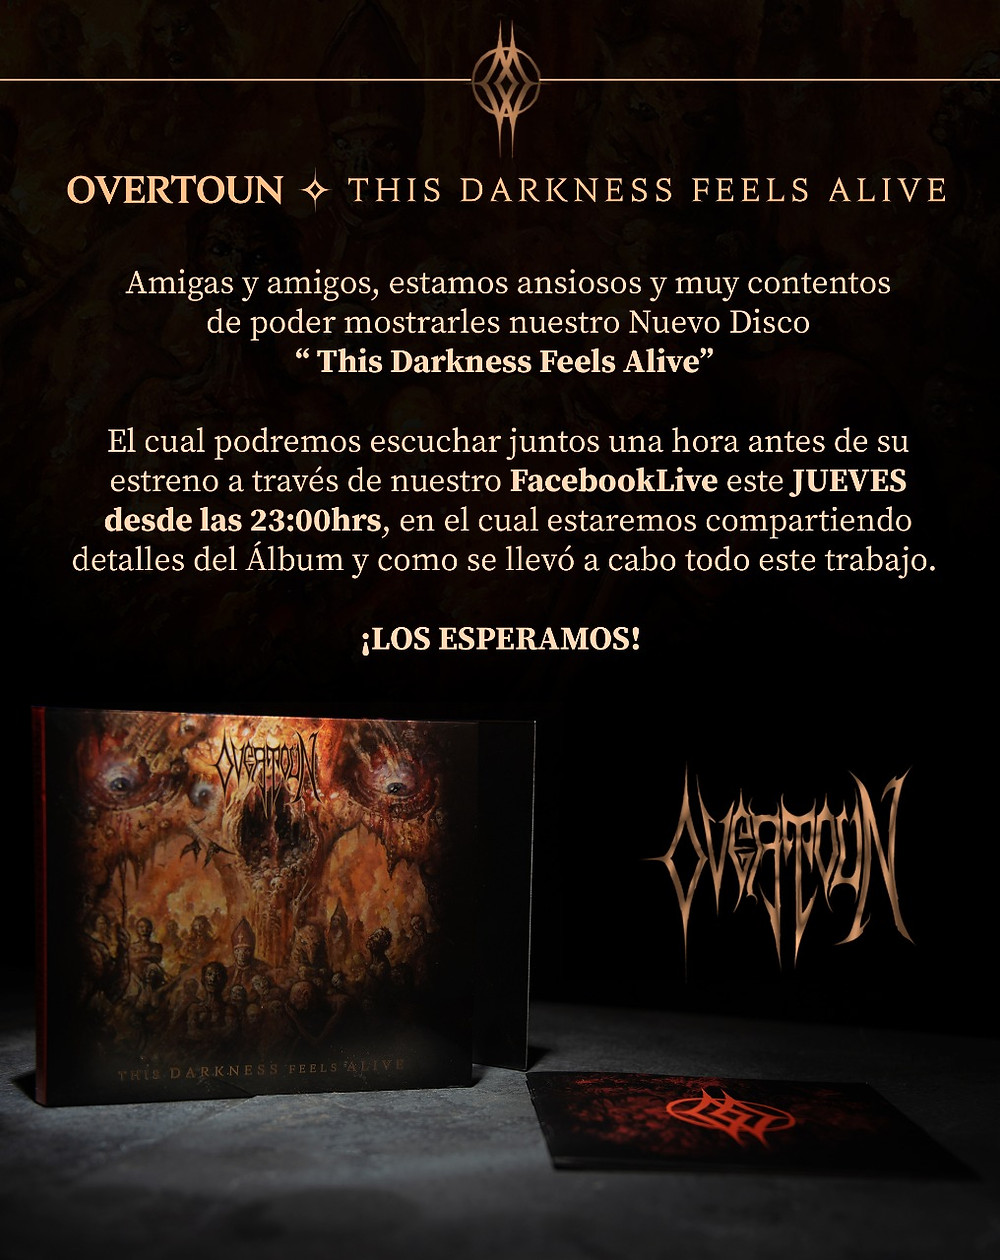 Overtoun This Darkness Feels Alive Release